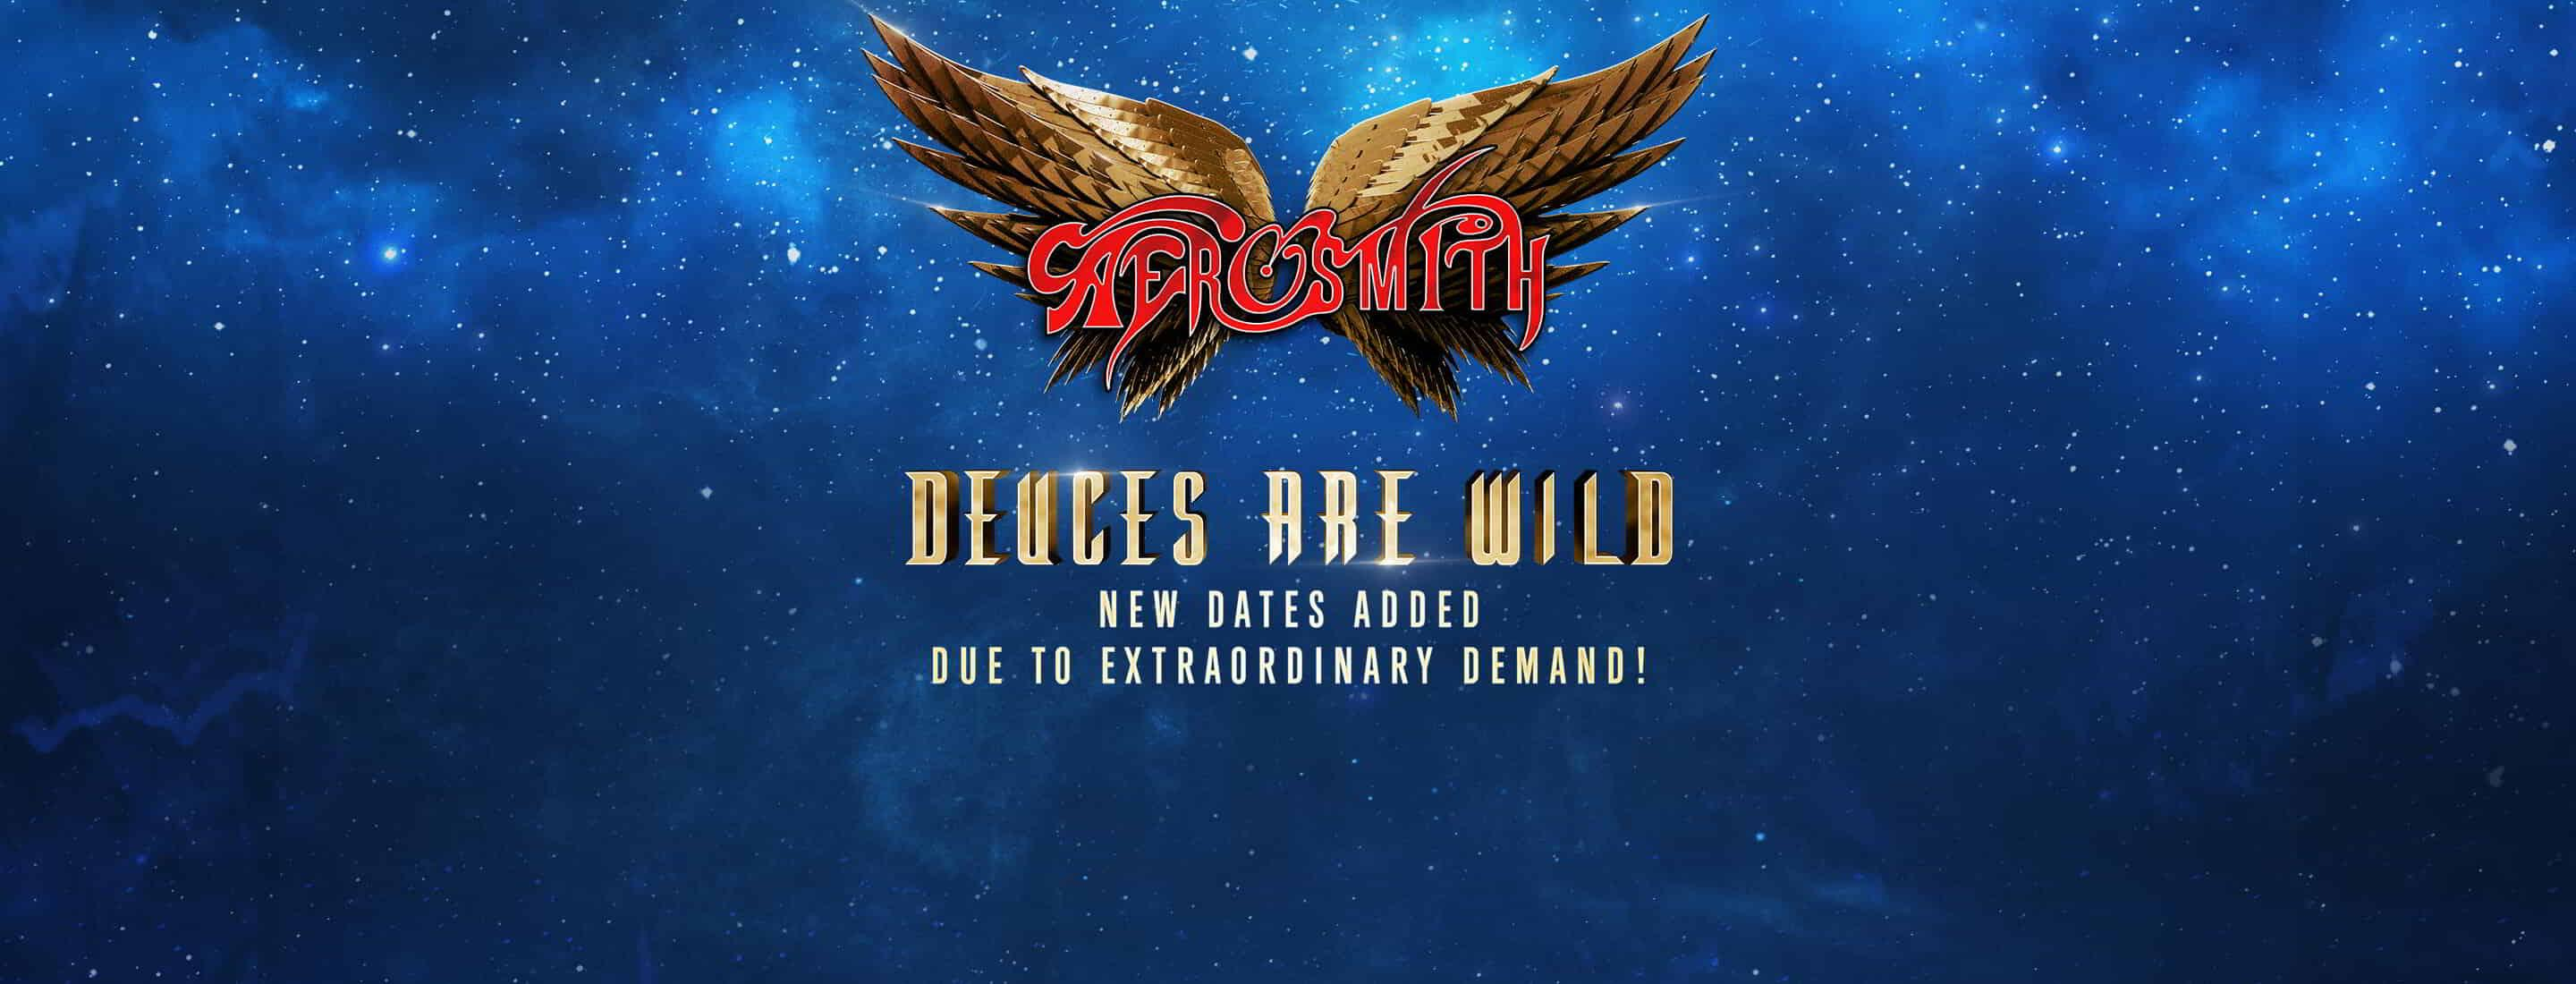 Aerosmith: Deuces are Wild